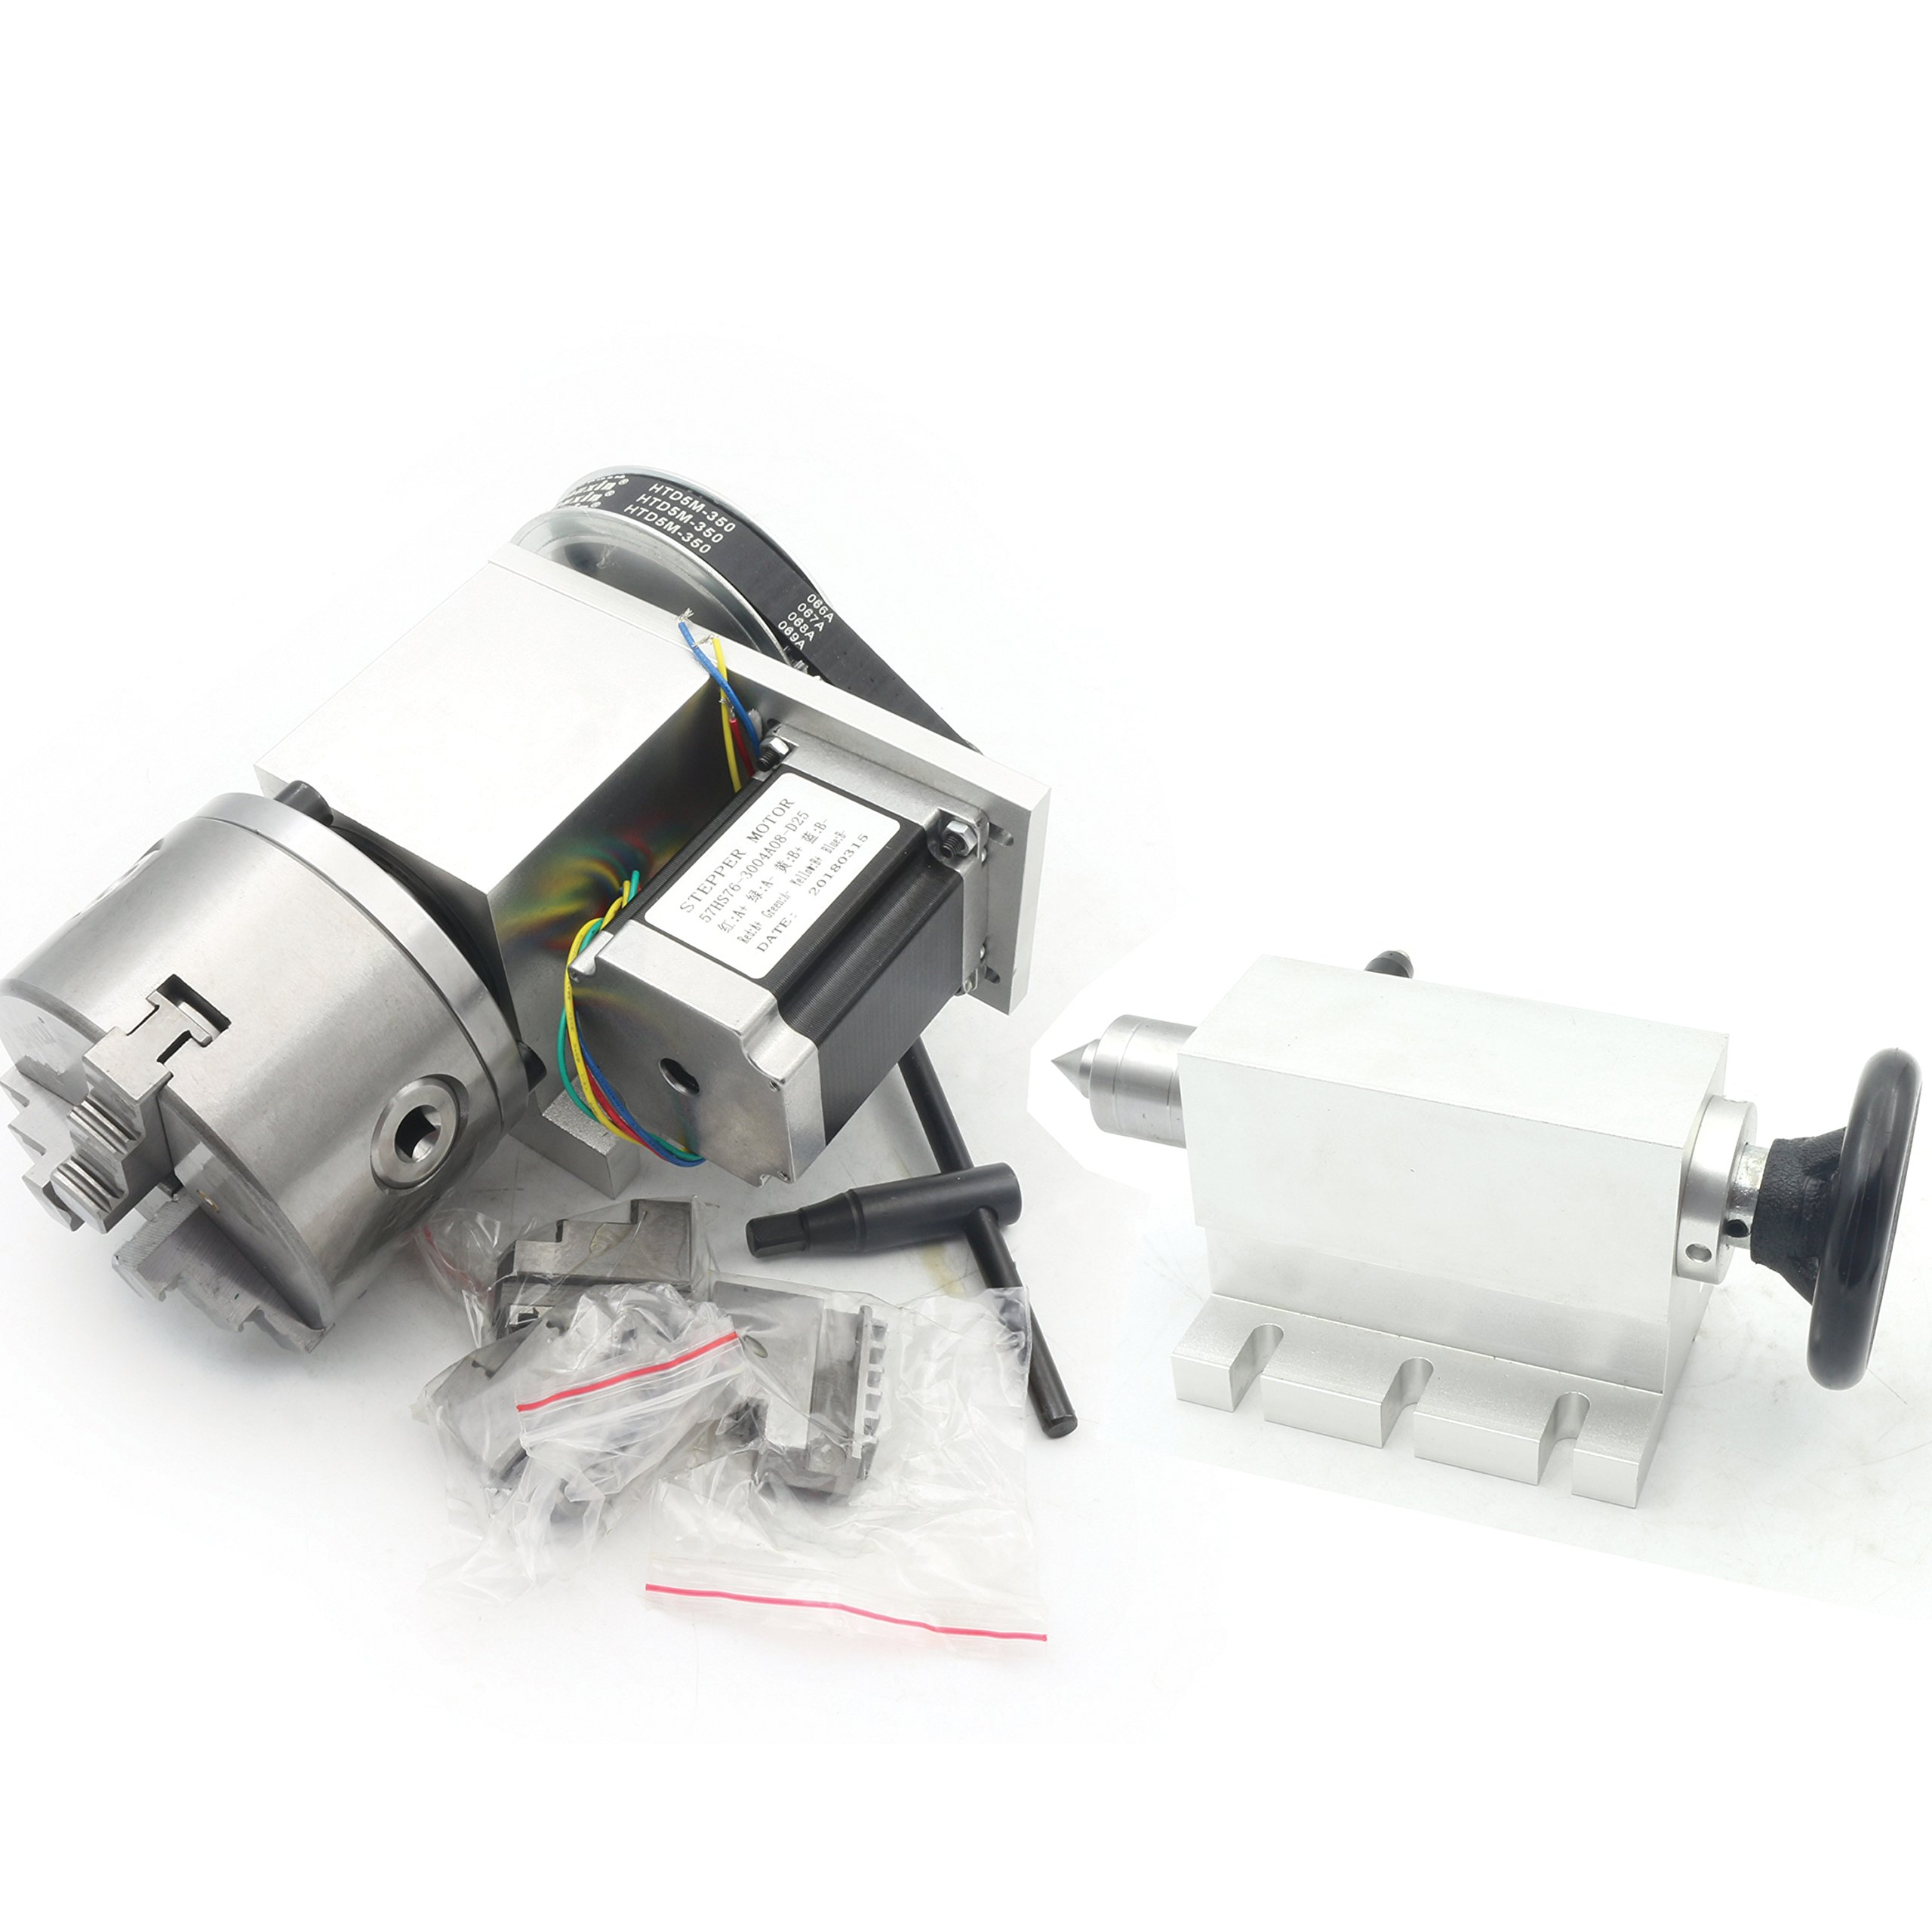 K11-100mm CNC Router Engraving Machine Rotational A 4th Axis 100mm 3 Jaw Chuck+65mm Tailstock (Reducing ratio:6:1)